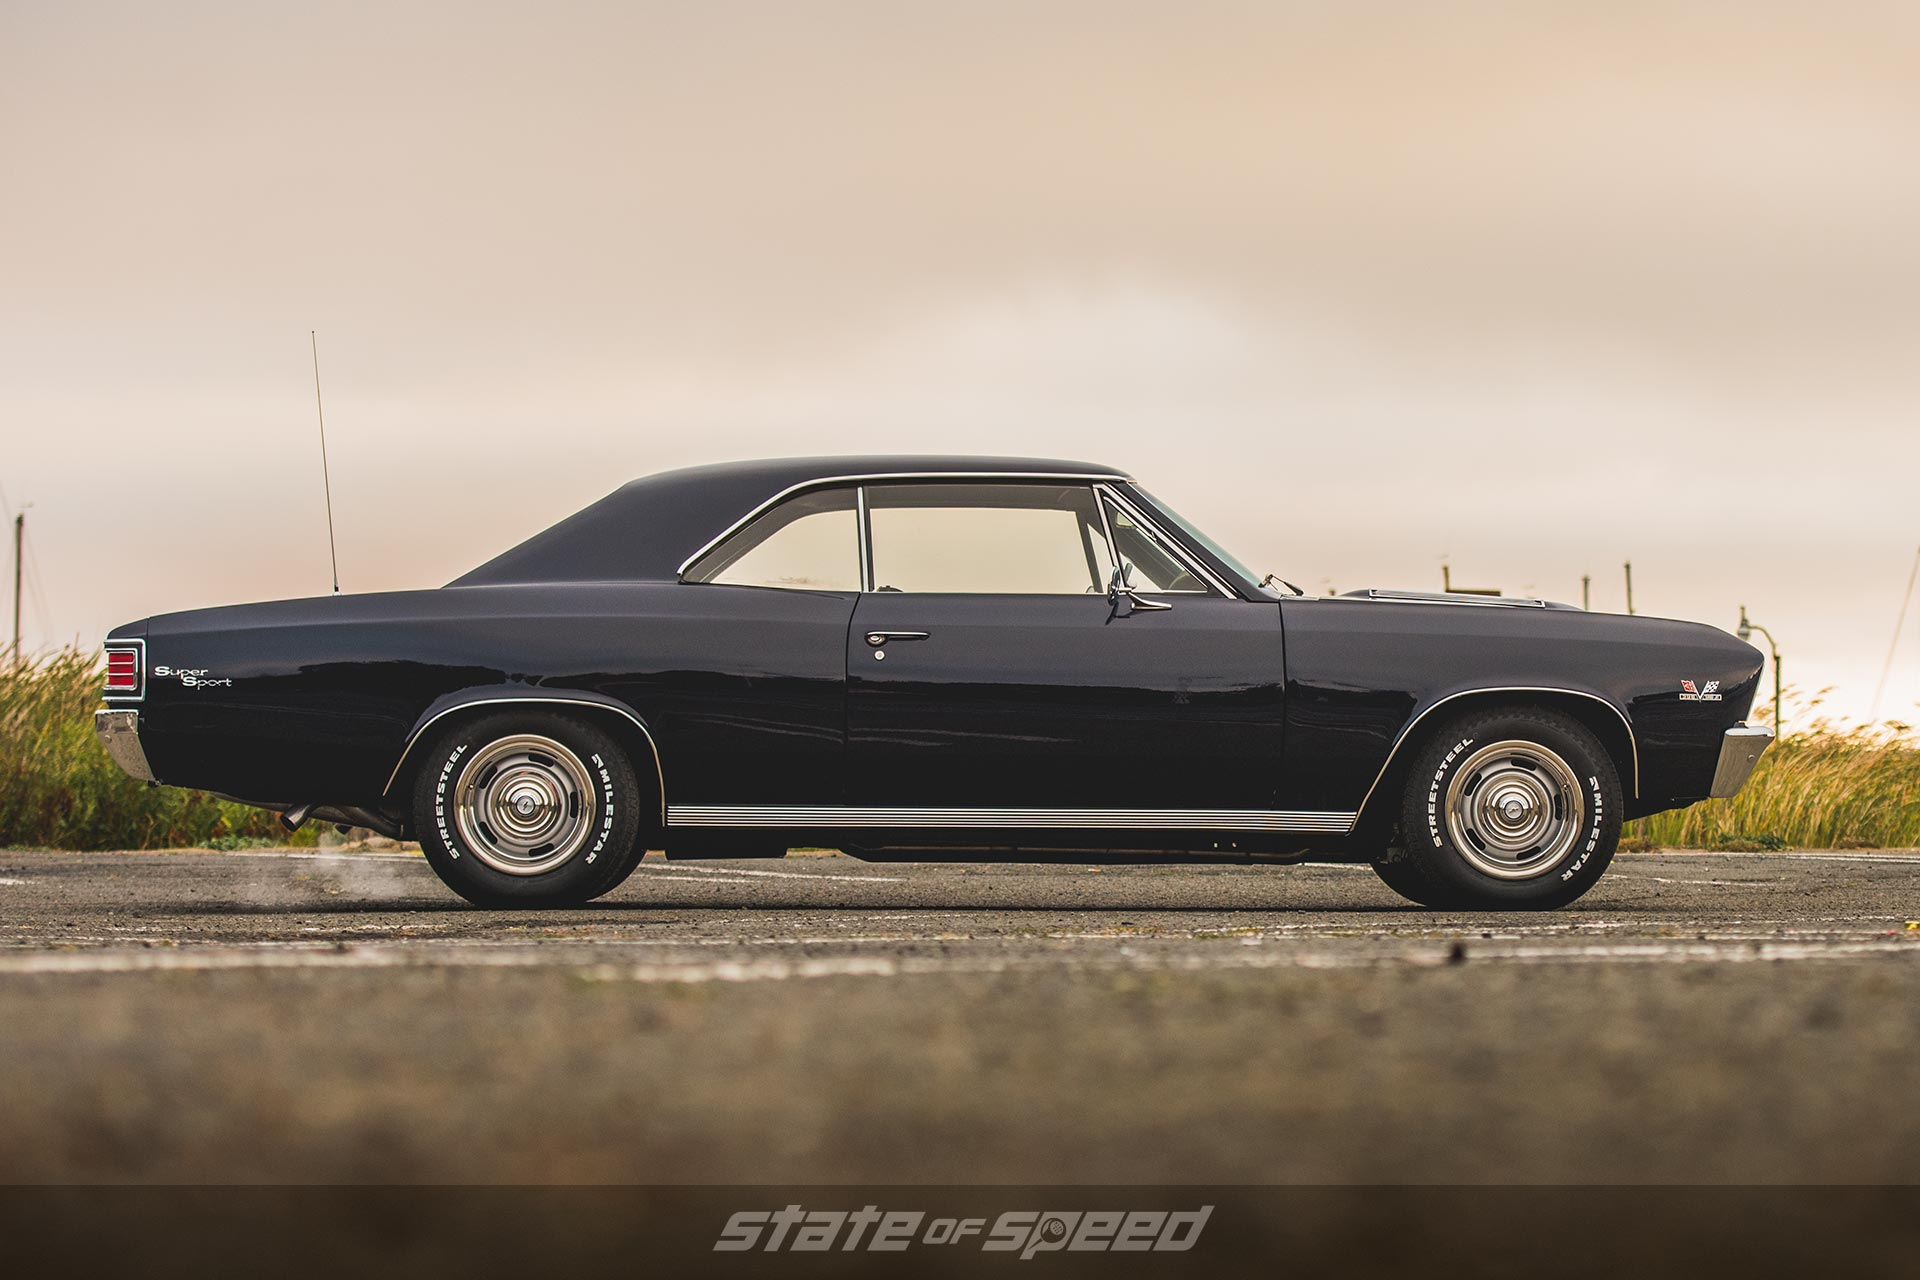 Clean 1967 Chevy Chevelle SS side view